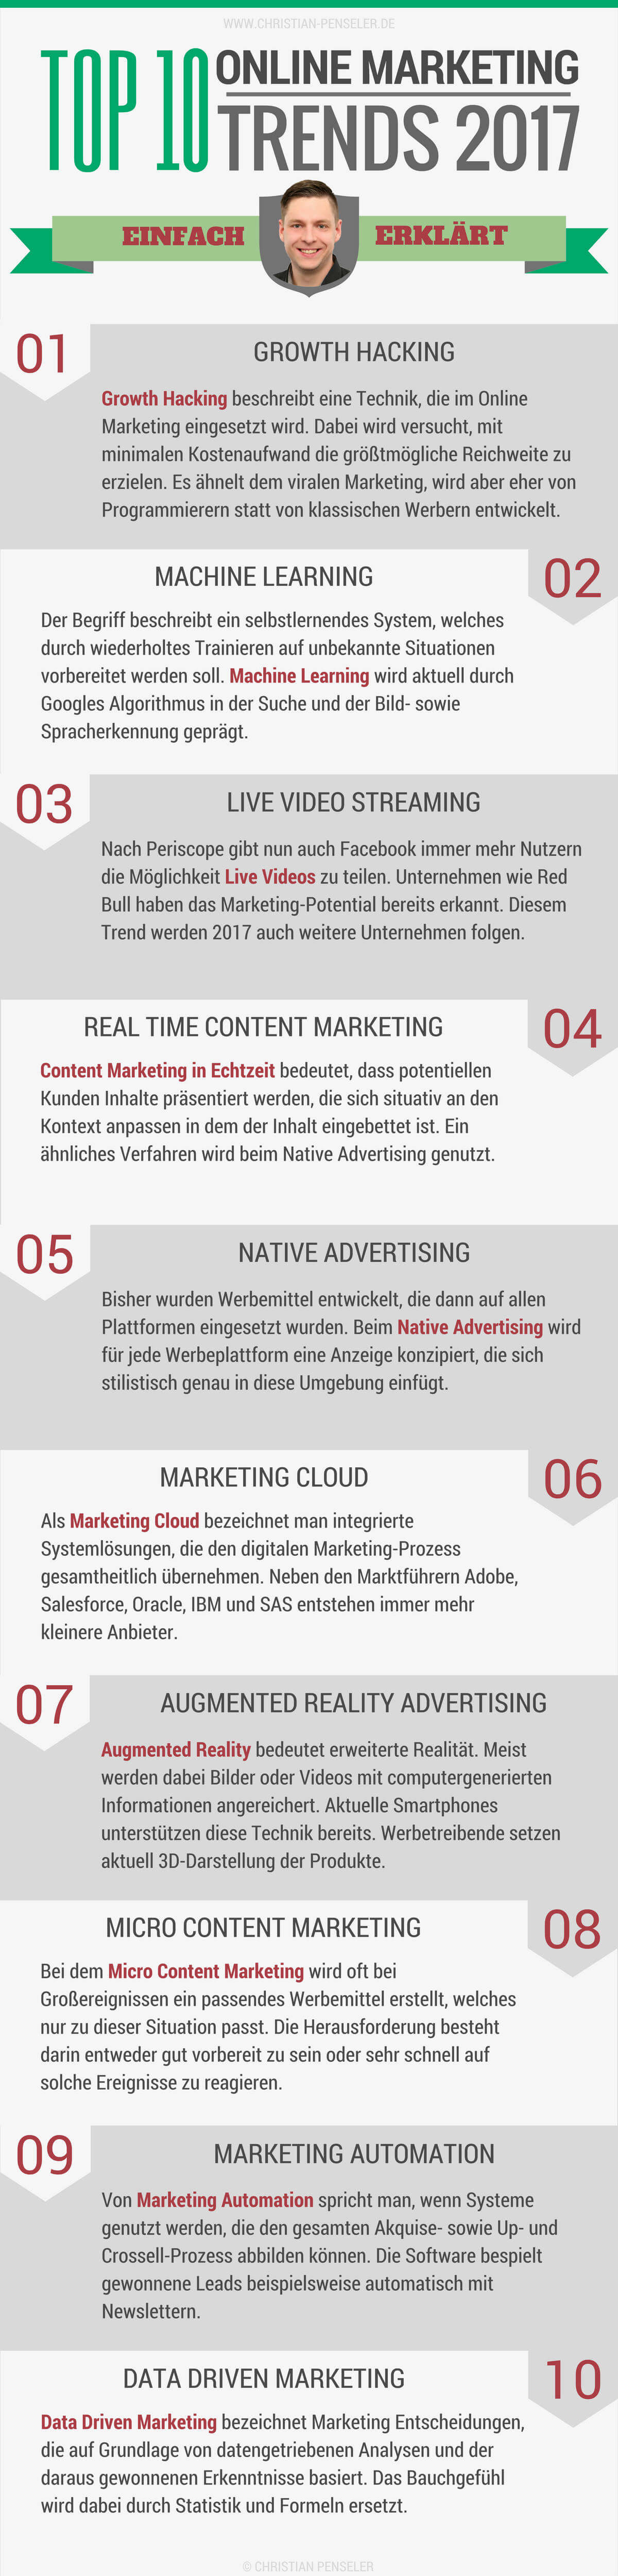 Infografik: Top 10 Online Marketing Trends 2017